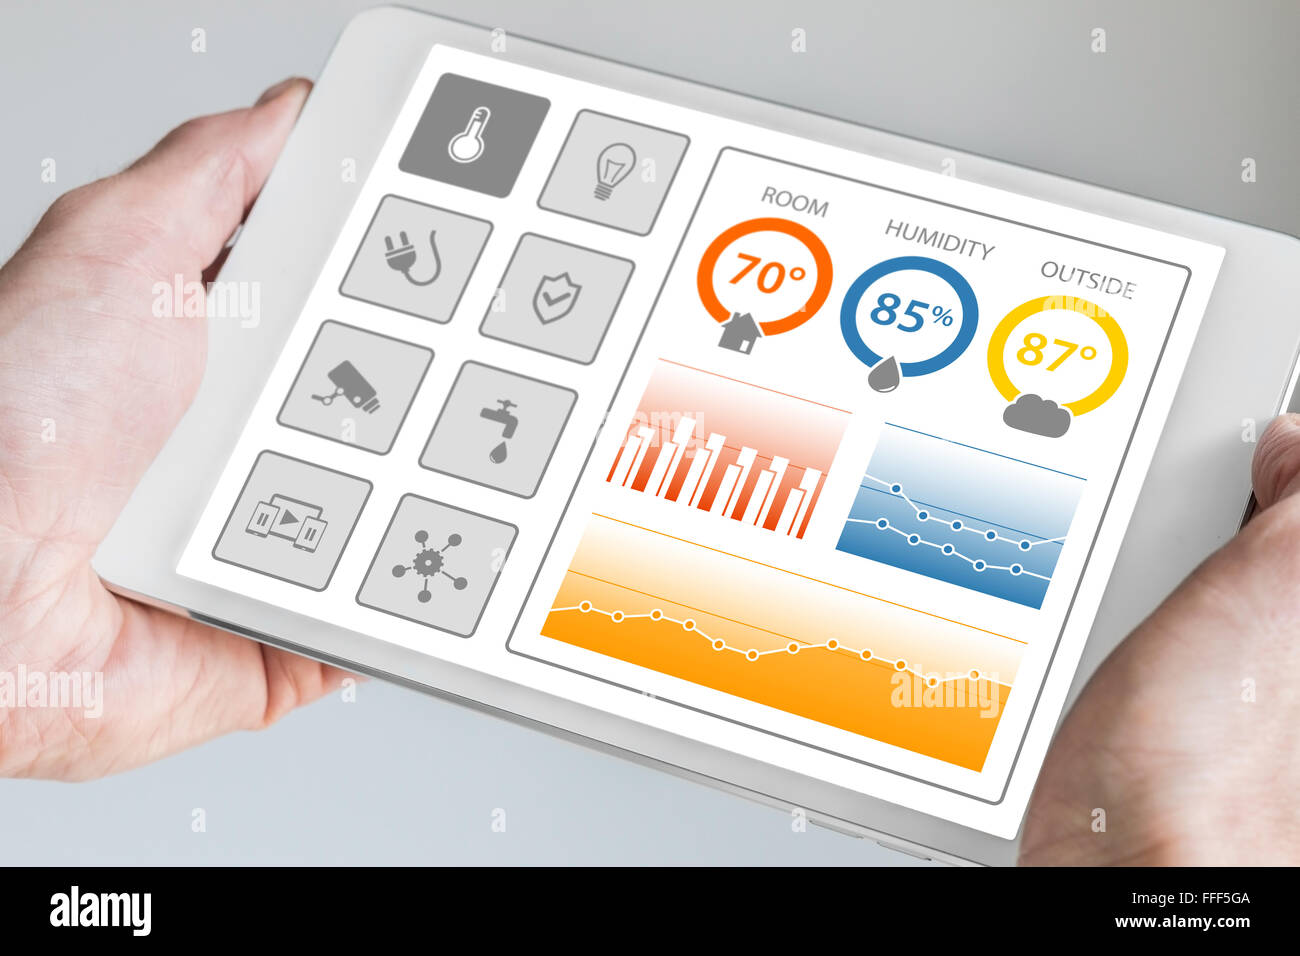 Smart home automation dashboard to control smart devices and sensors in the house or apartment. Hand holding modern - Stock Image